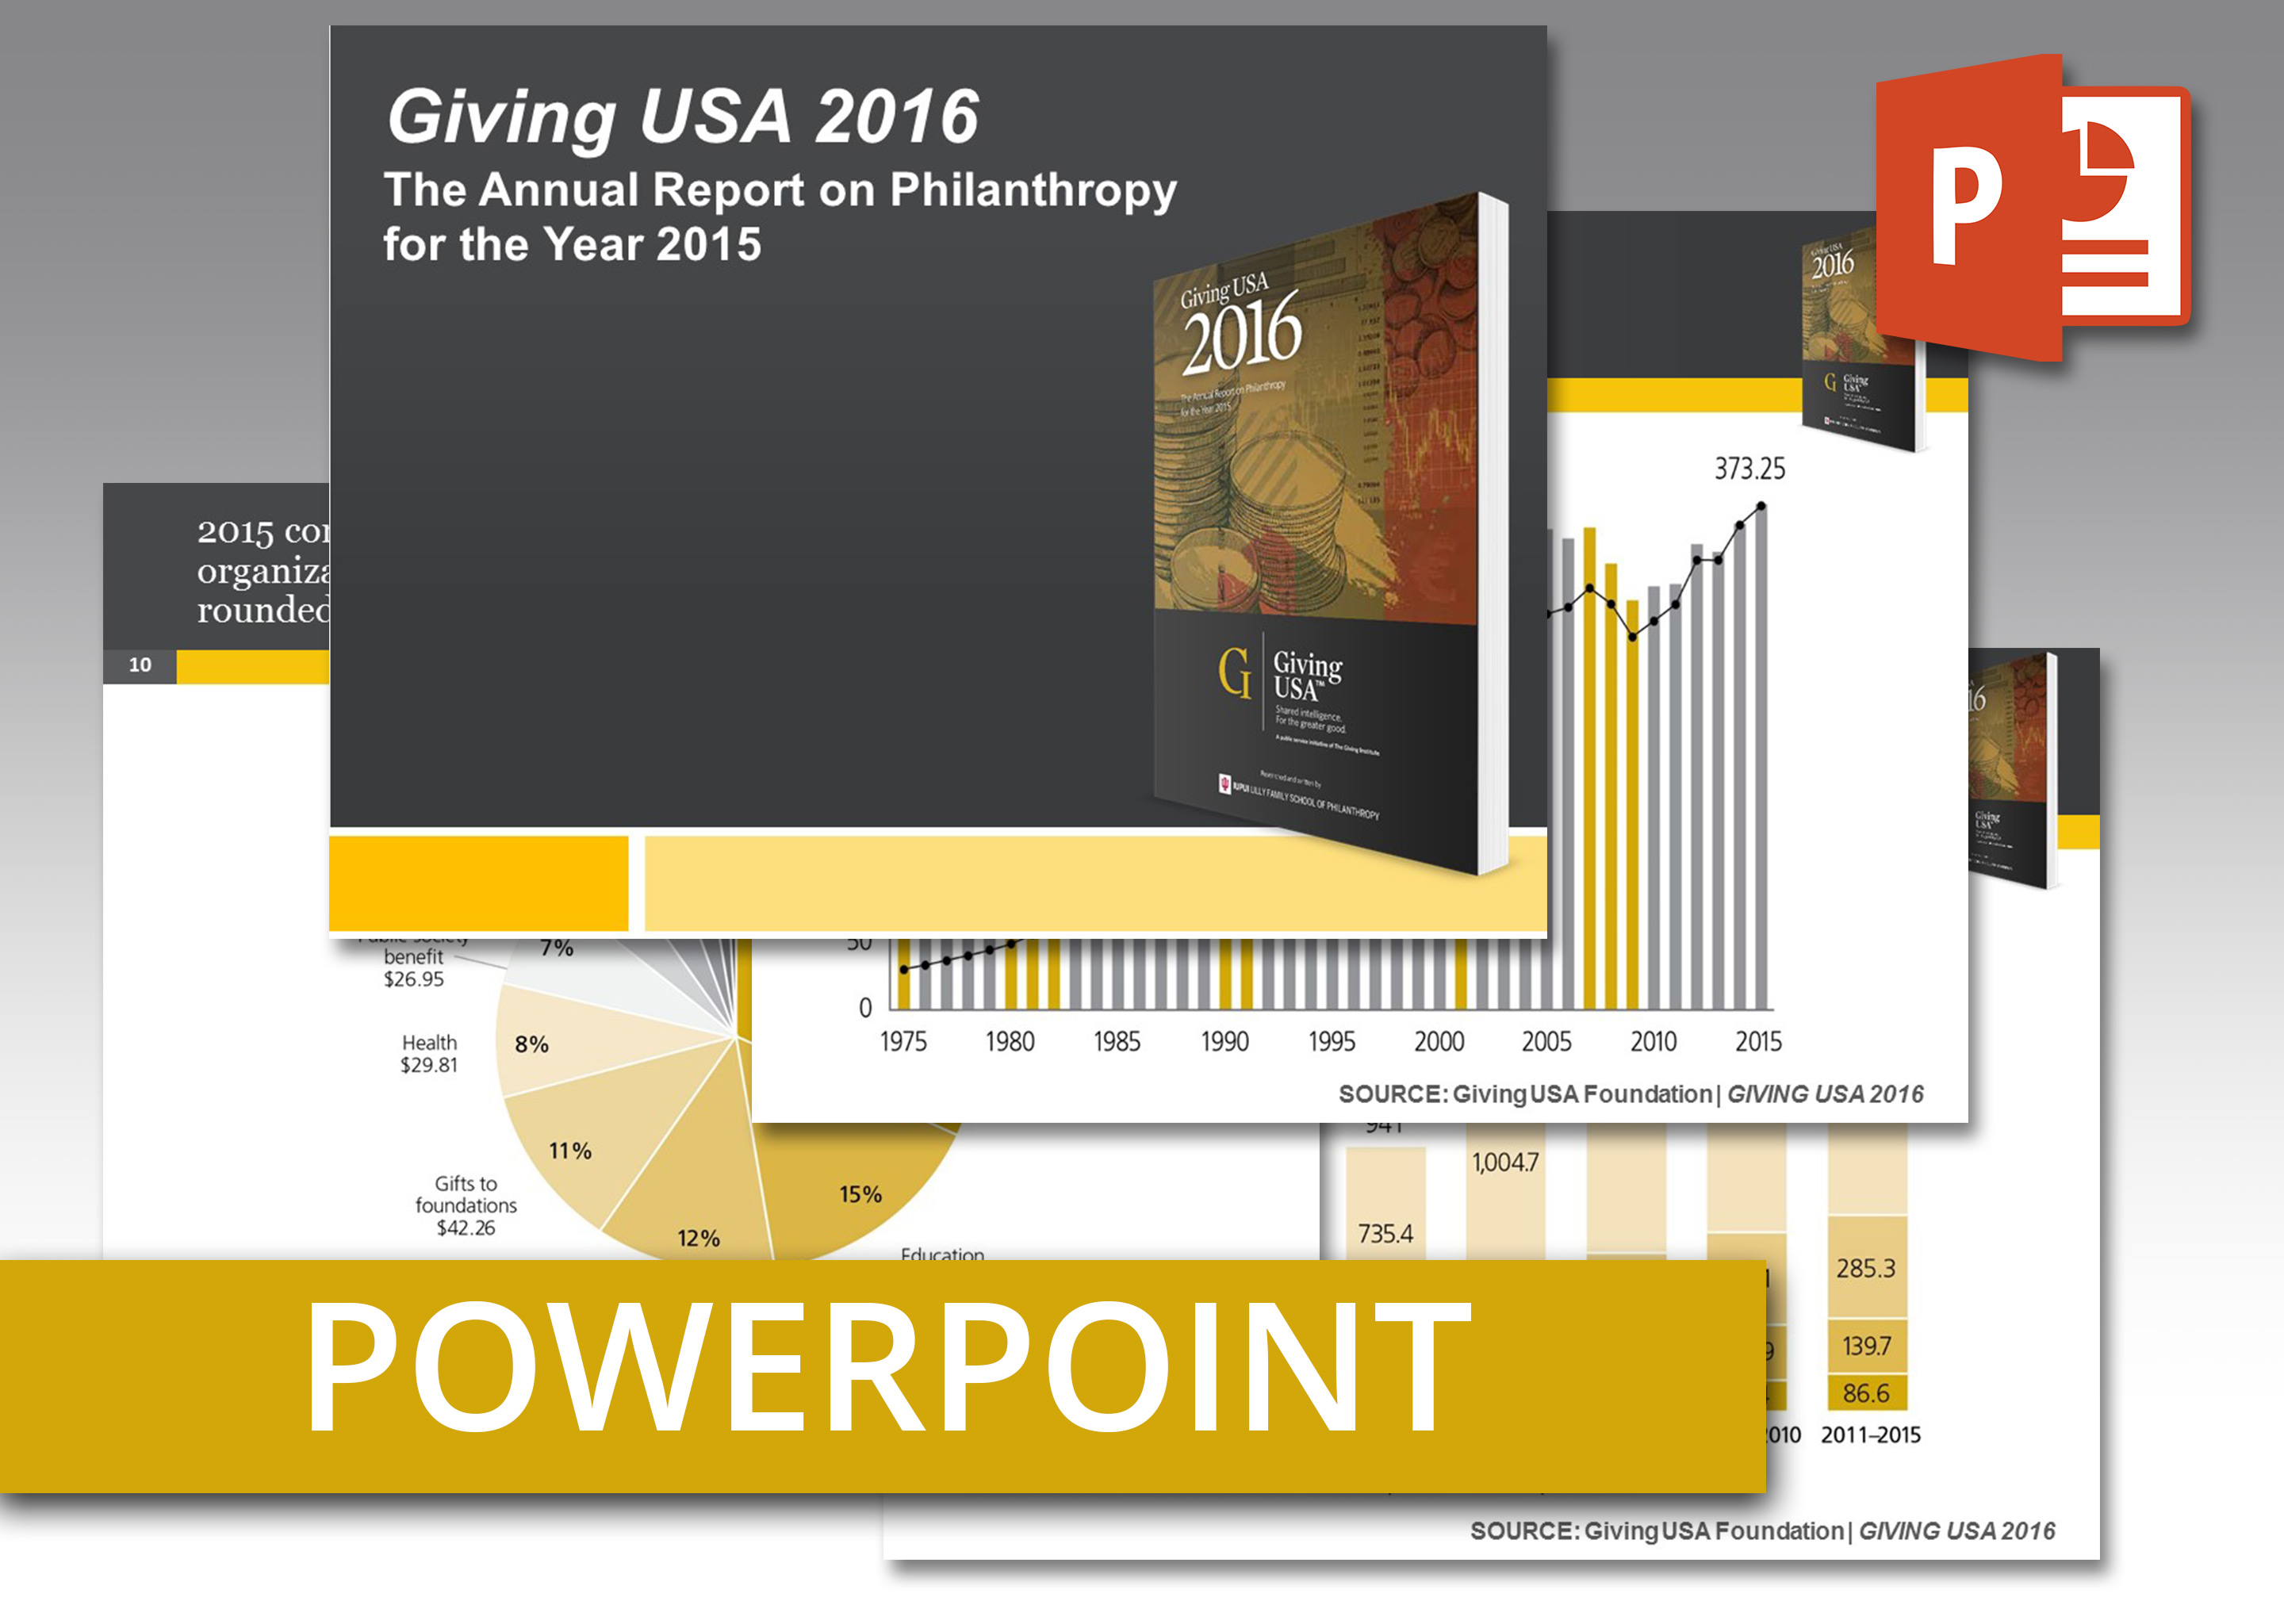 Usdgus  Winsome Giving Usa  Powerpoint An Easytouse Presentation Of Report  With Exciting Giving Usa  Powerpoint An Easytouse Presentation Of Report Findings Including Talking Points With Awesome Word Count On Powerpoint Also Microsoft Office Powerpoint  In Addition Embed Movie In Powerpoint And Powerpoint Os As Well As Making A Powerpoint Template Additionally Free Powerpoint App From Givingusaorg With Usdgus  Exciting Giving Usa  Powerpoint An Easytouse Presentation Of Report  With Awesome Giving Usa  Powerpoint An Easytouse Presentation Of Report Findings Including Talking Points And Winsome Word Count On Powerpoint Also Microsoft Office Powerpoint  In Addition Embed Movie In Powerpoint From Givingusaorg